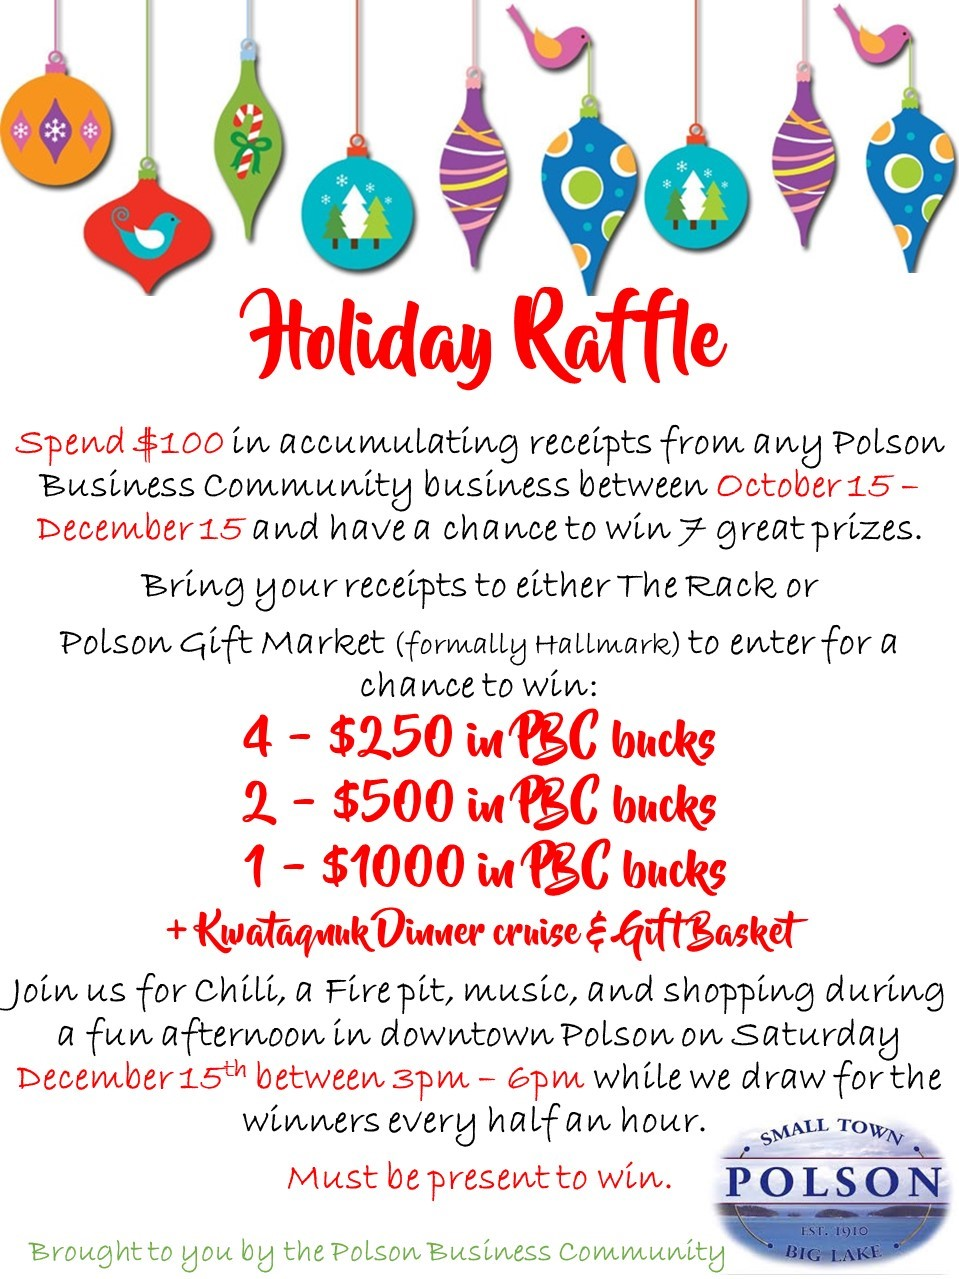 Holiday Raffle brought to you be the Polson Business Community.